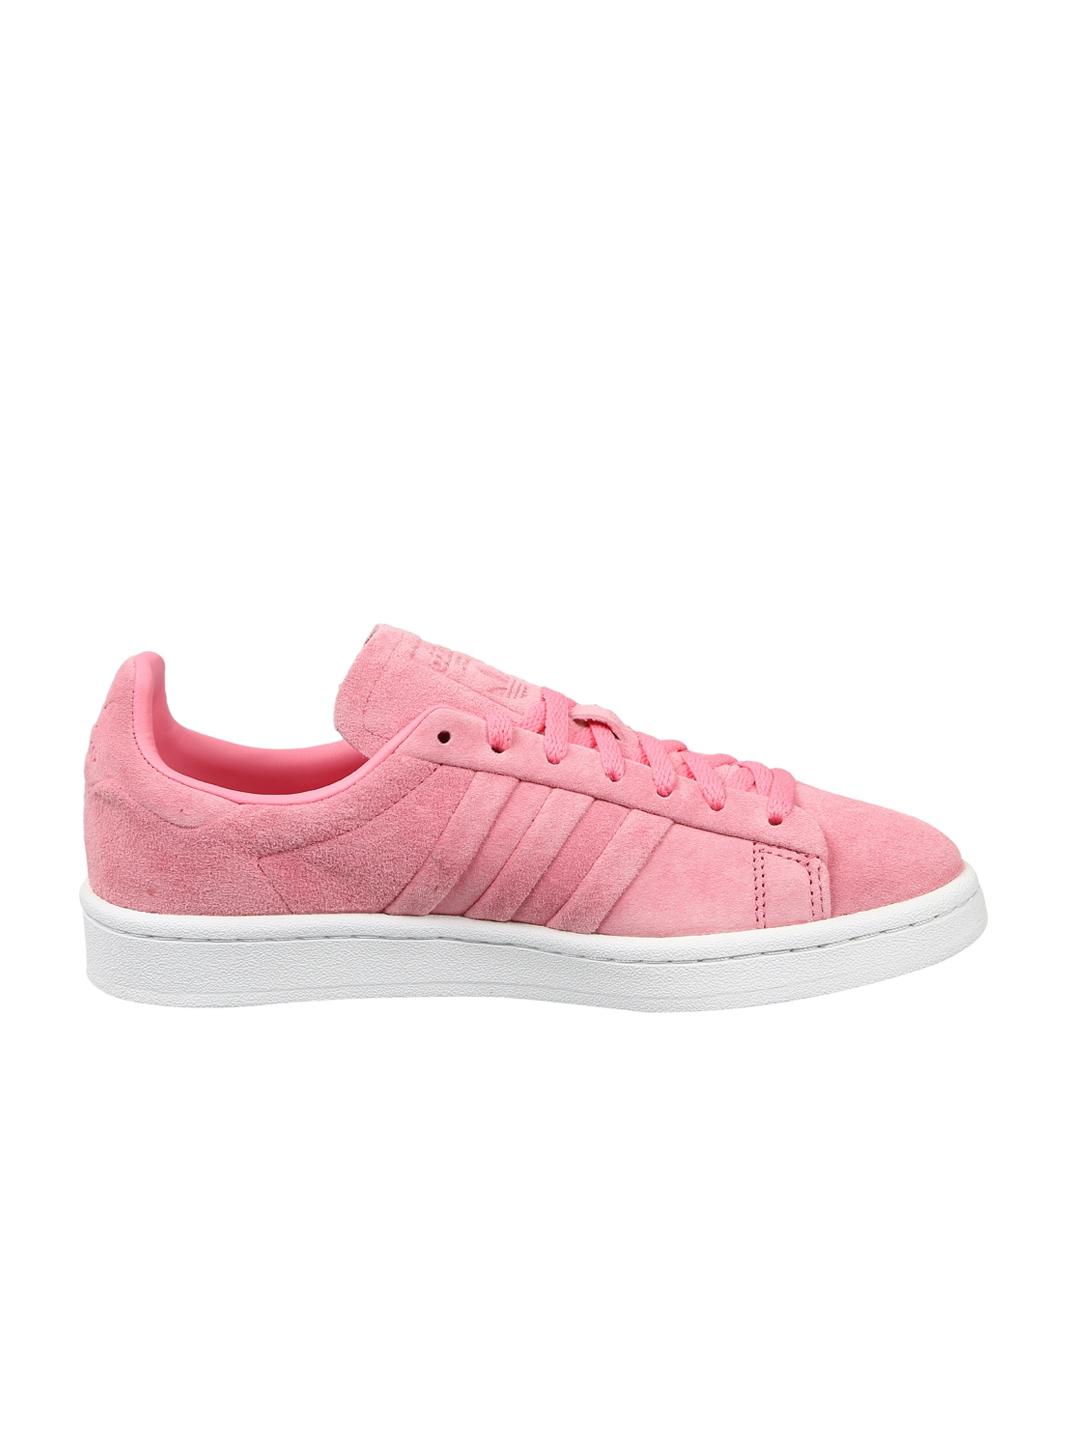 cheap for discount d3bc2 3c277 Adidas Originals Women Pink Campus Stitch And Turn Sneakers